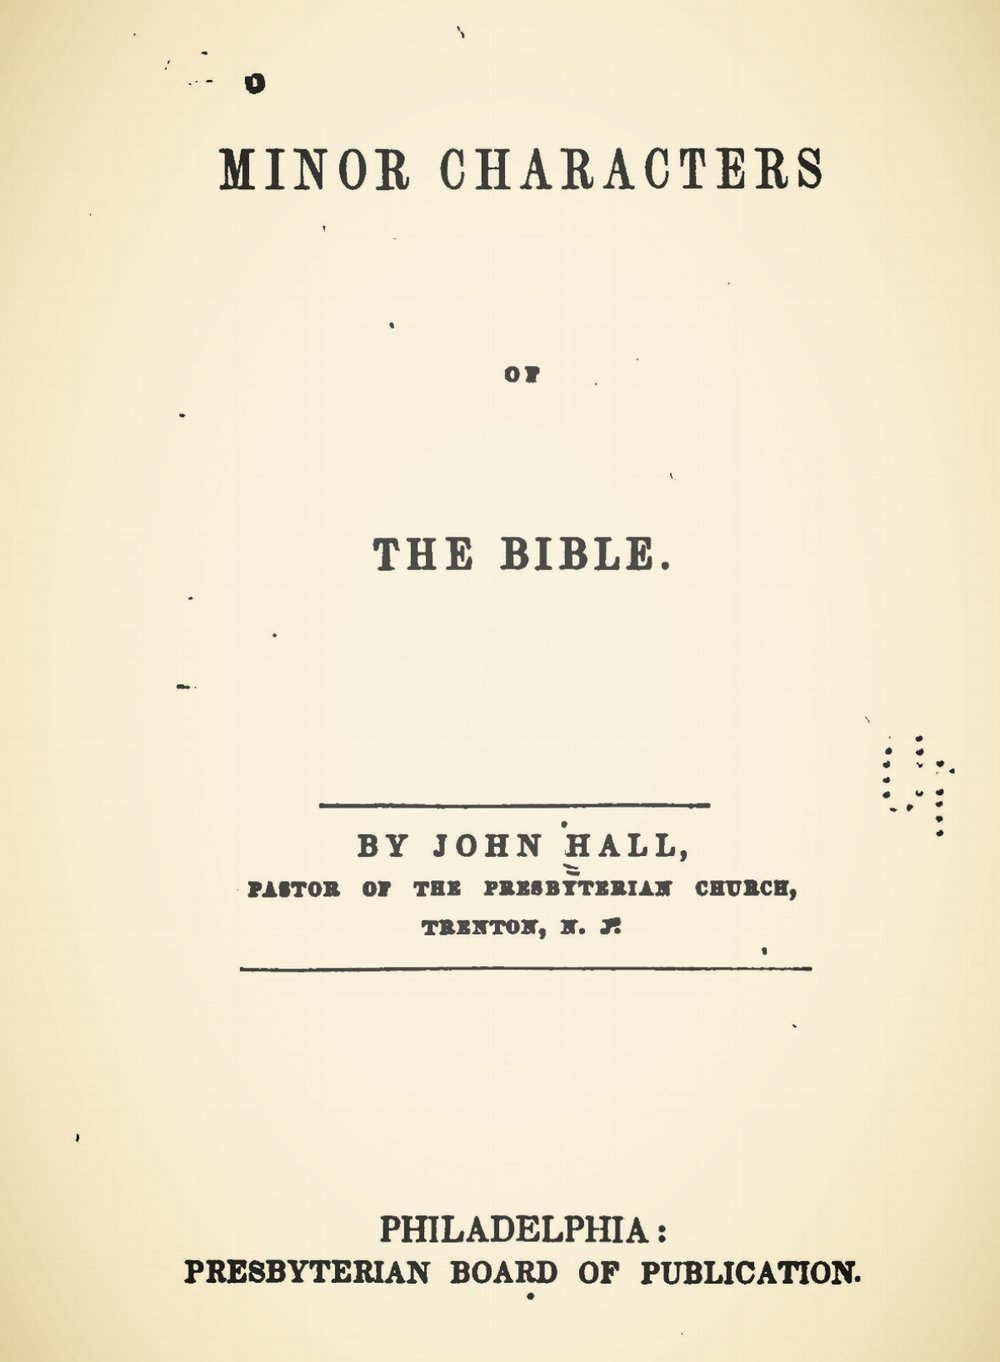 Hall, John, Minor Characters of the Bible Title Page.jpg